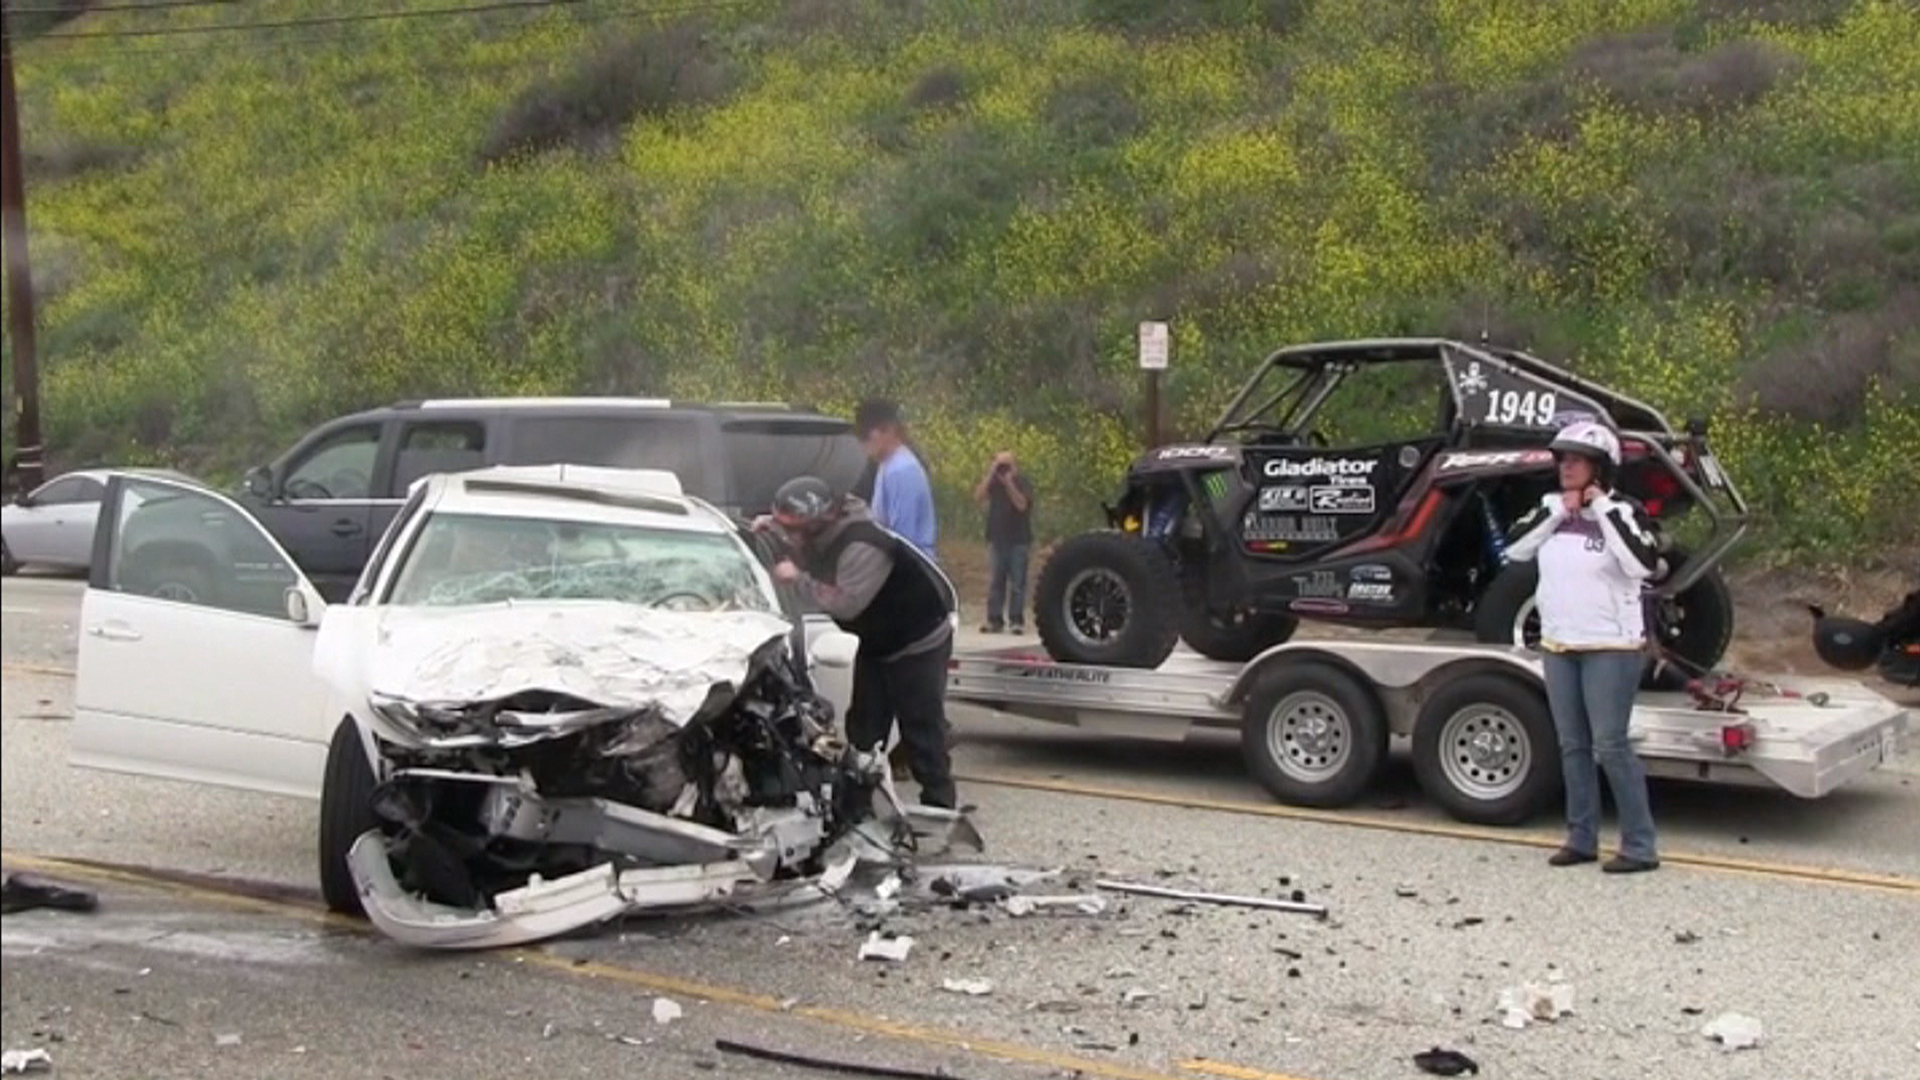 Caitlyn Jenner could face manslaughter charge in Malibu car crash ...